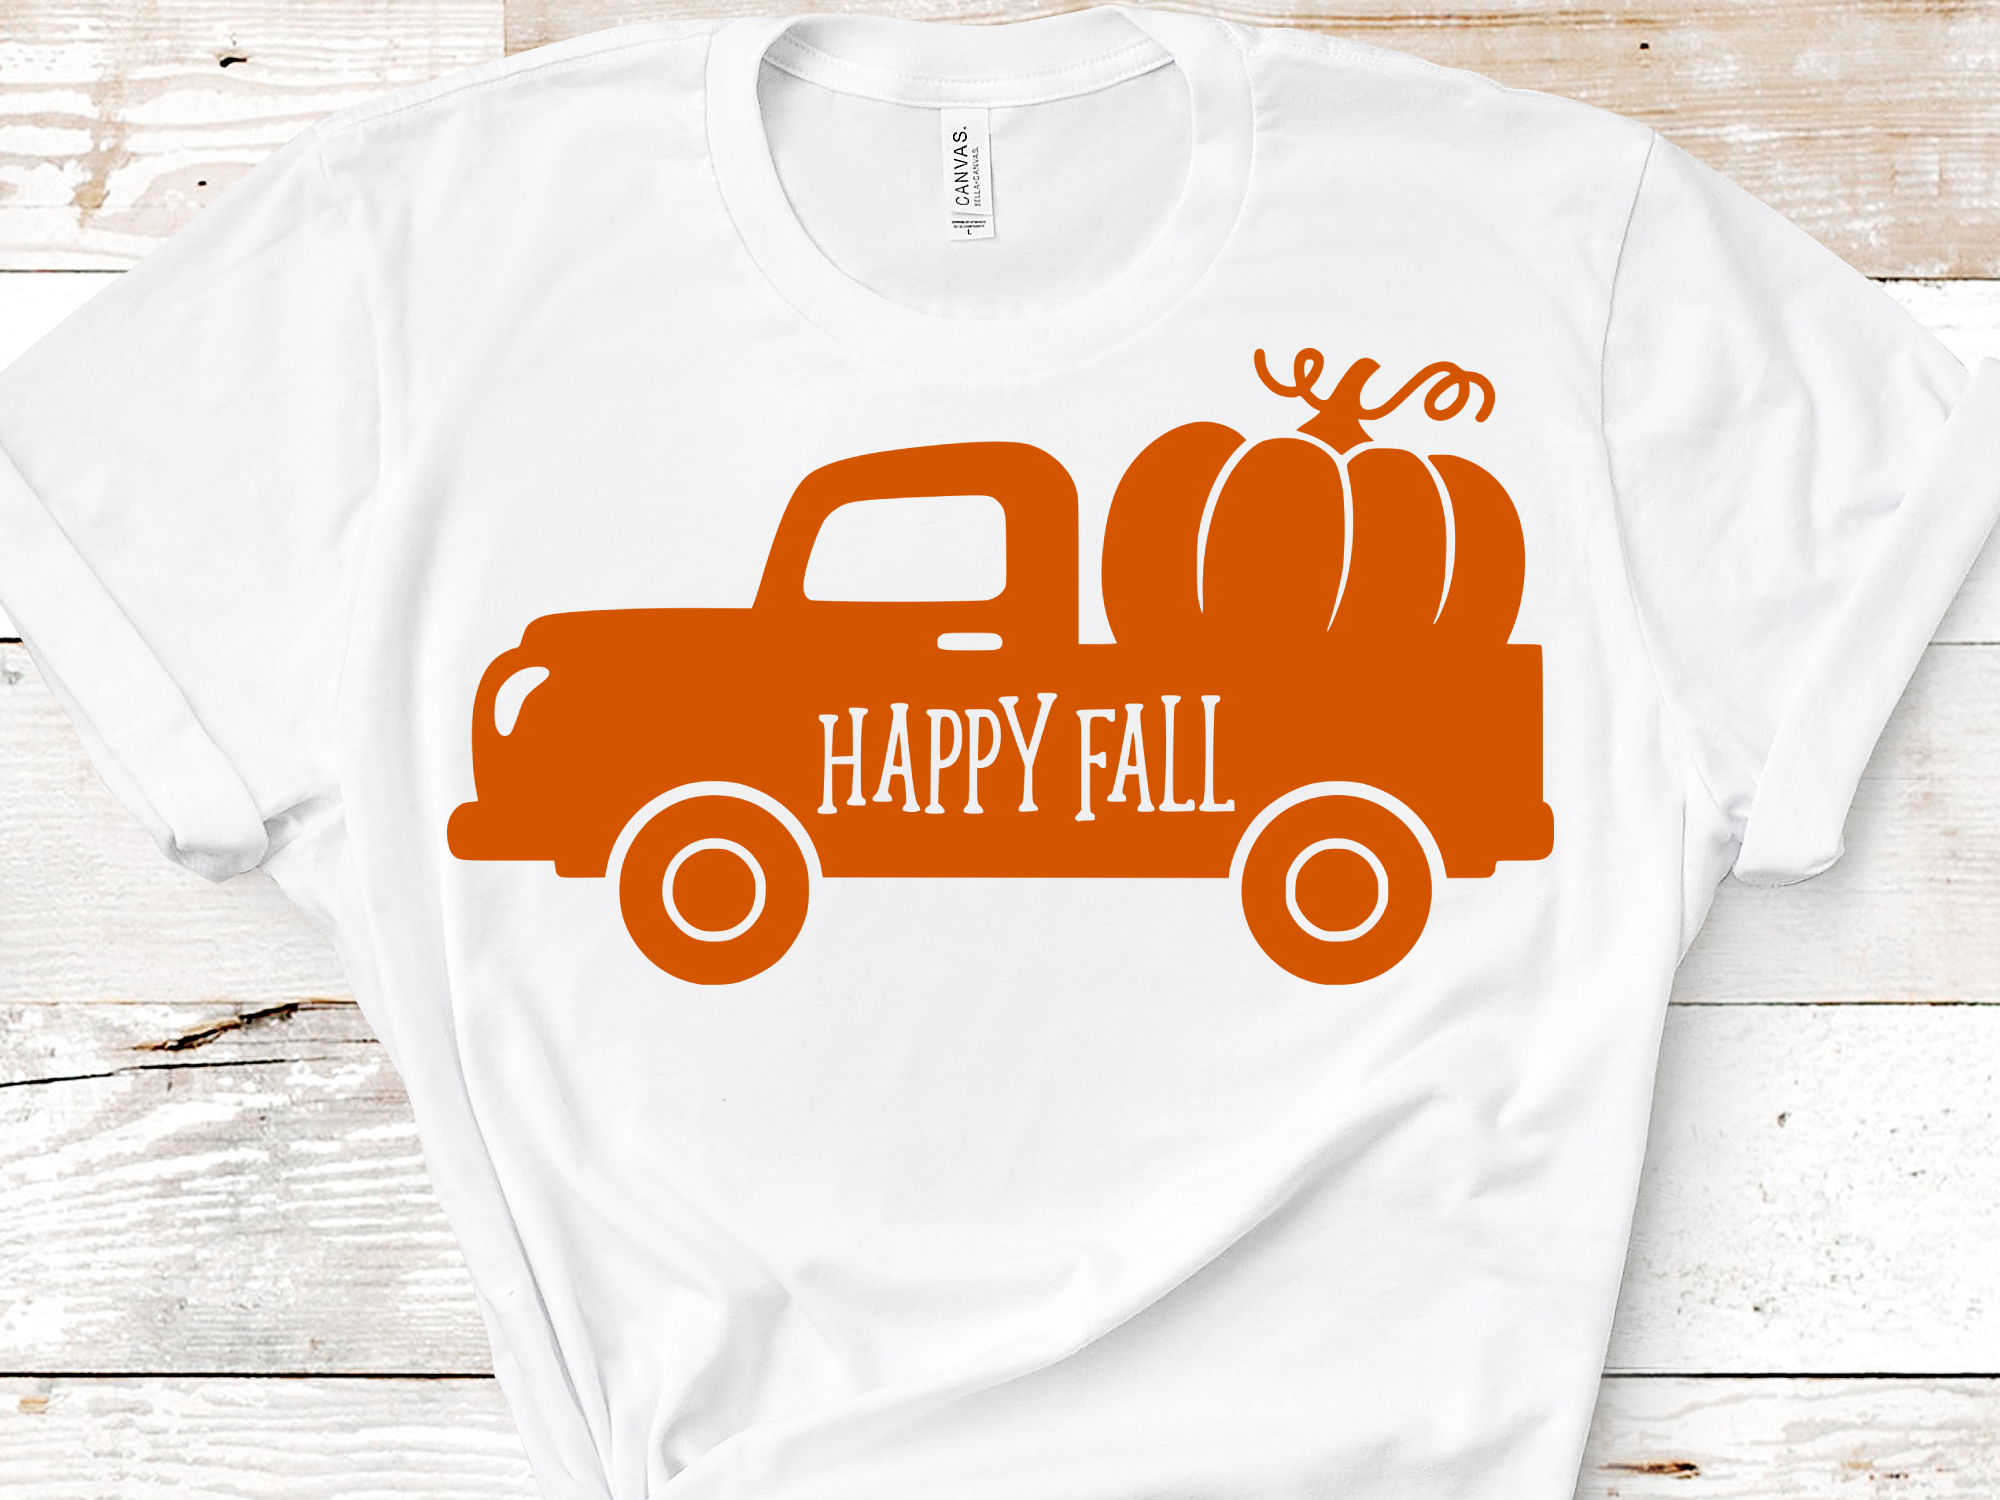 Download Free Old Vintage Fall Truck With Pumpkin Graphic By Mockup Venue for Cricut Explore, Silhouette and other cutting machines.